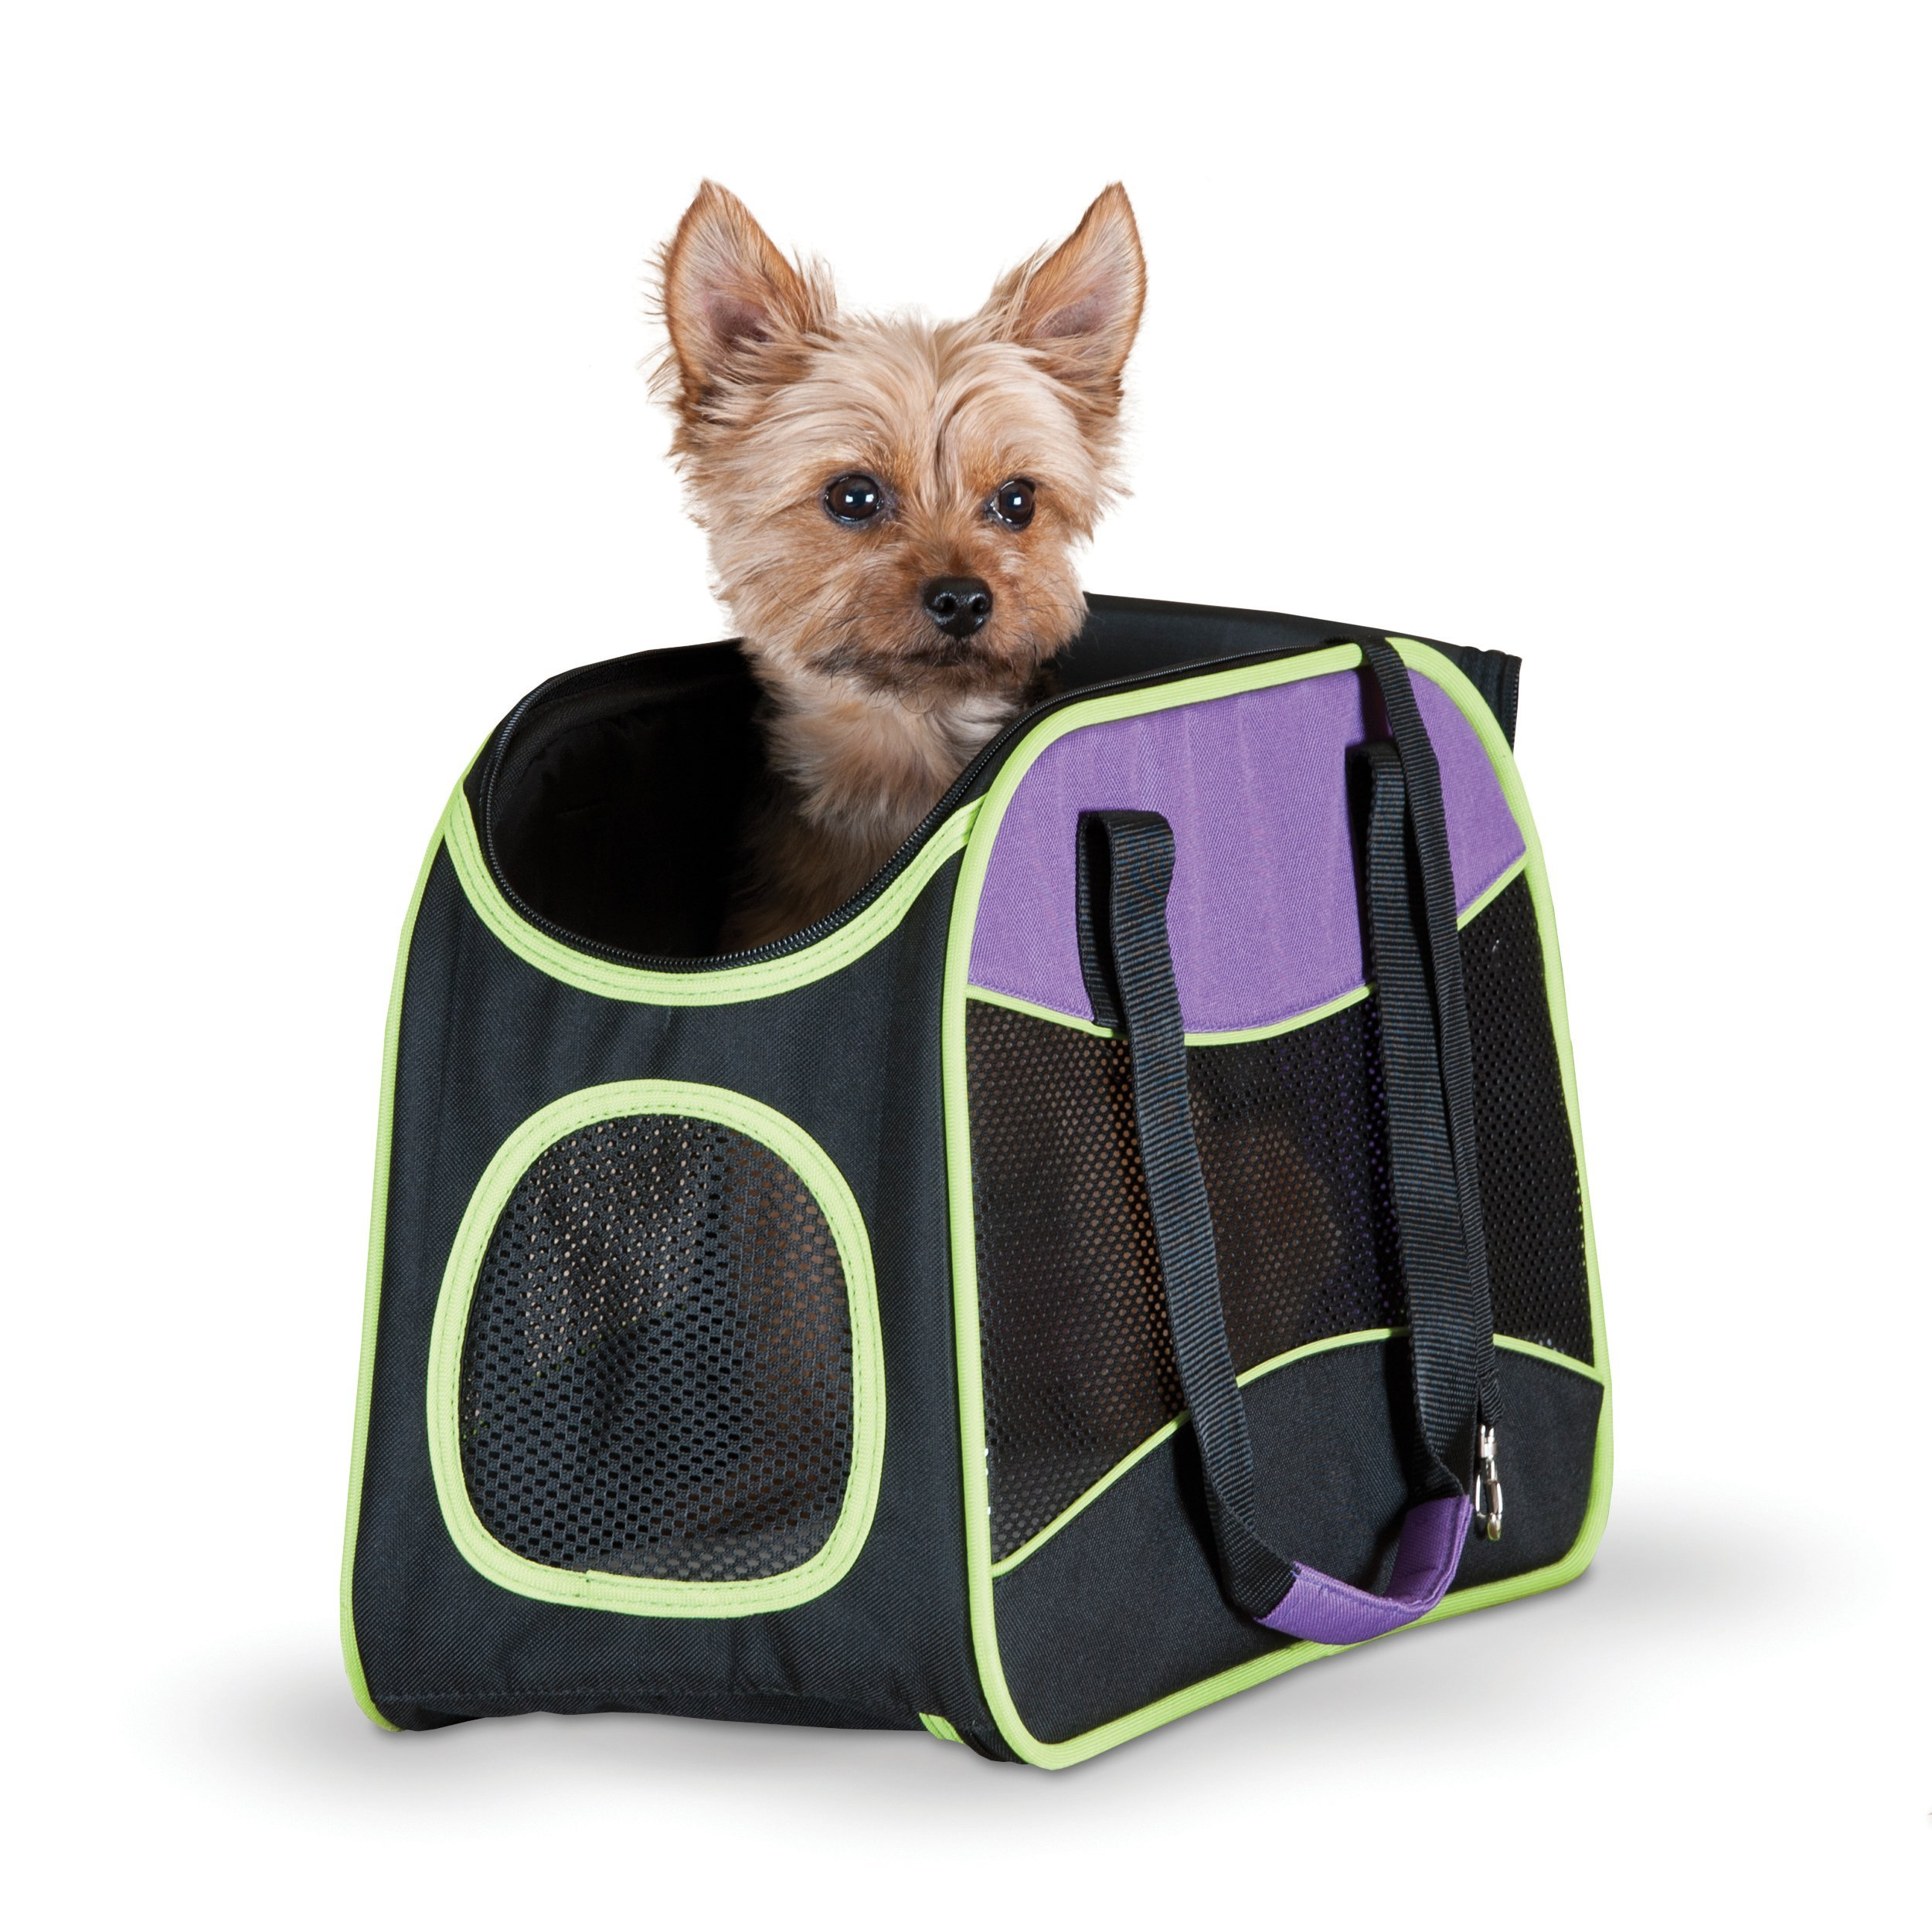 K&H Manufacturing Easy Go Carrier Purple/Black/Lime Green 8-Inch by 16.5-Inch